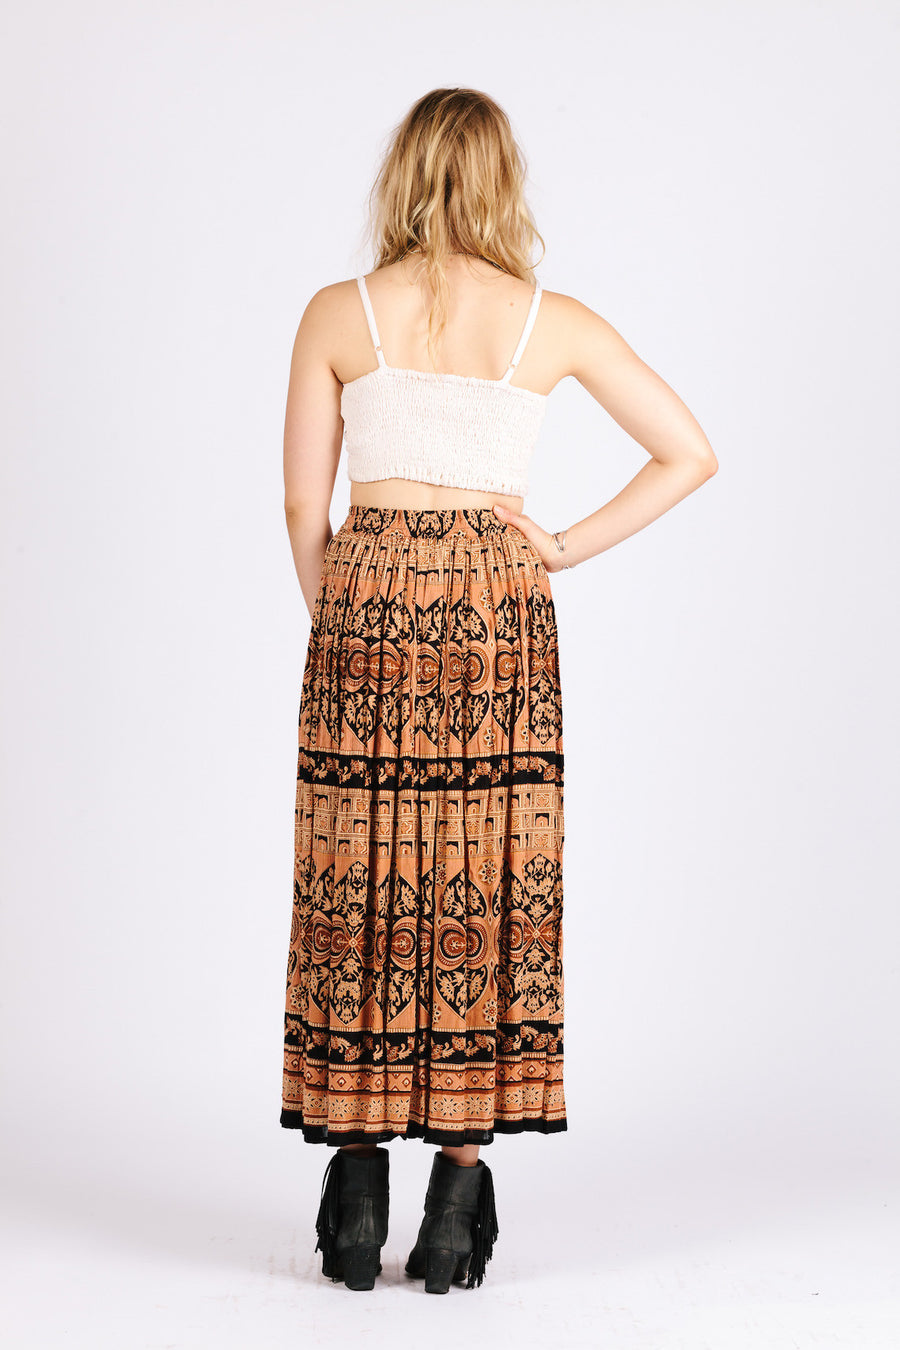 THE HARLOW SKIRT